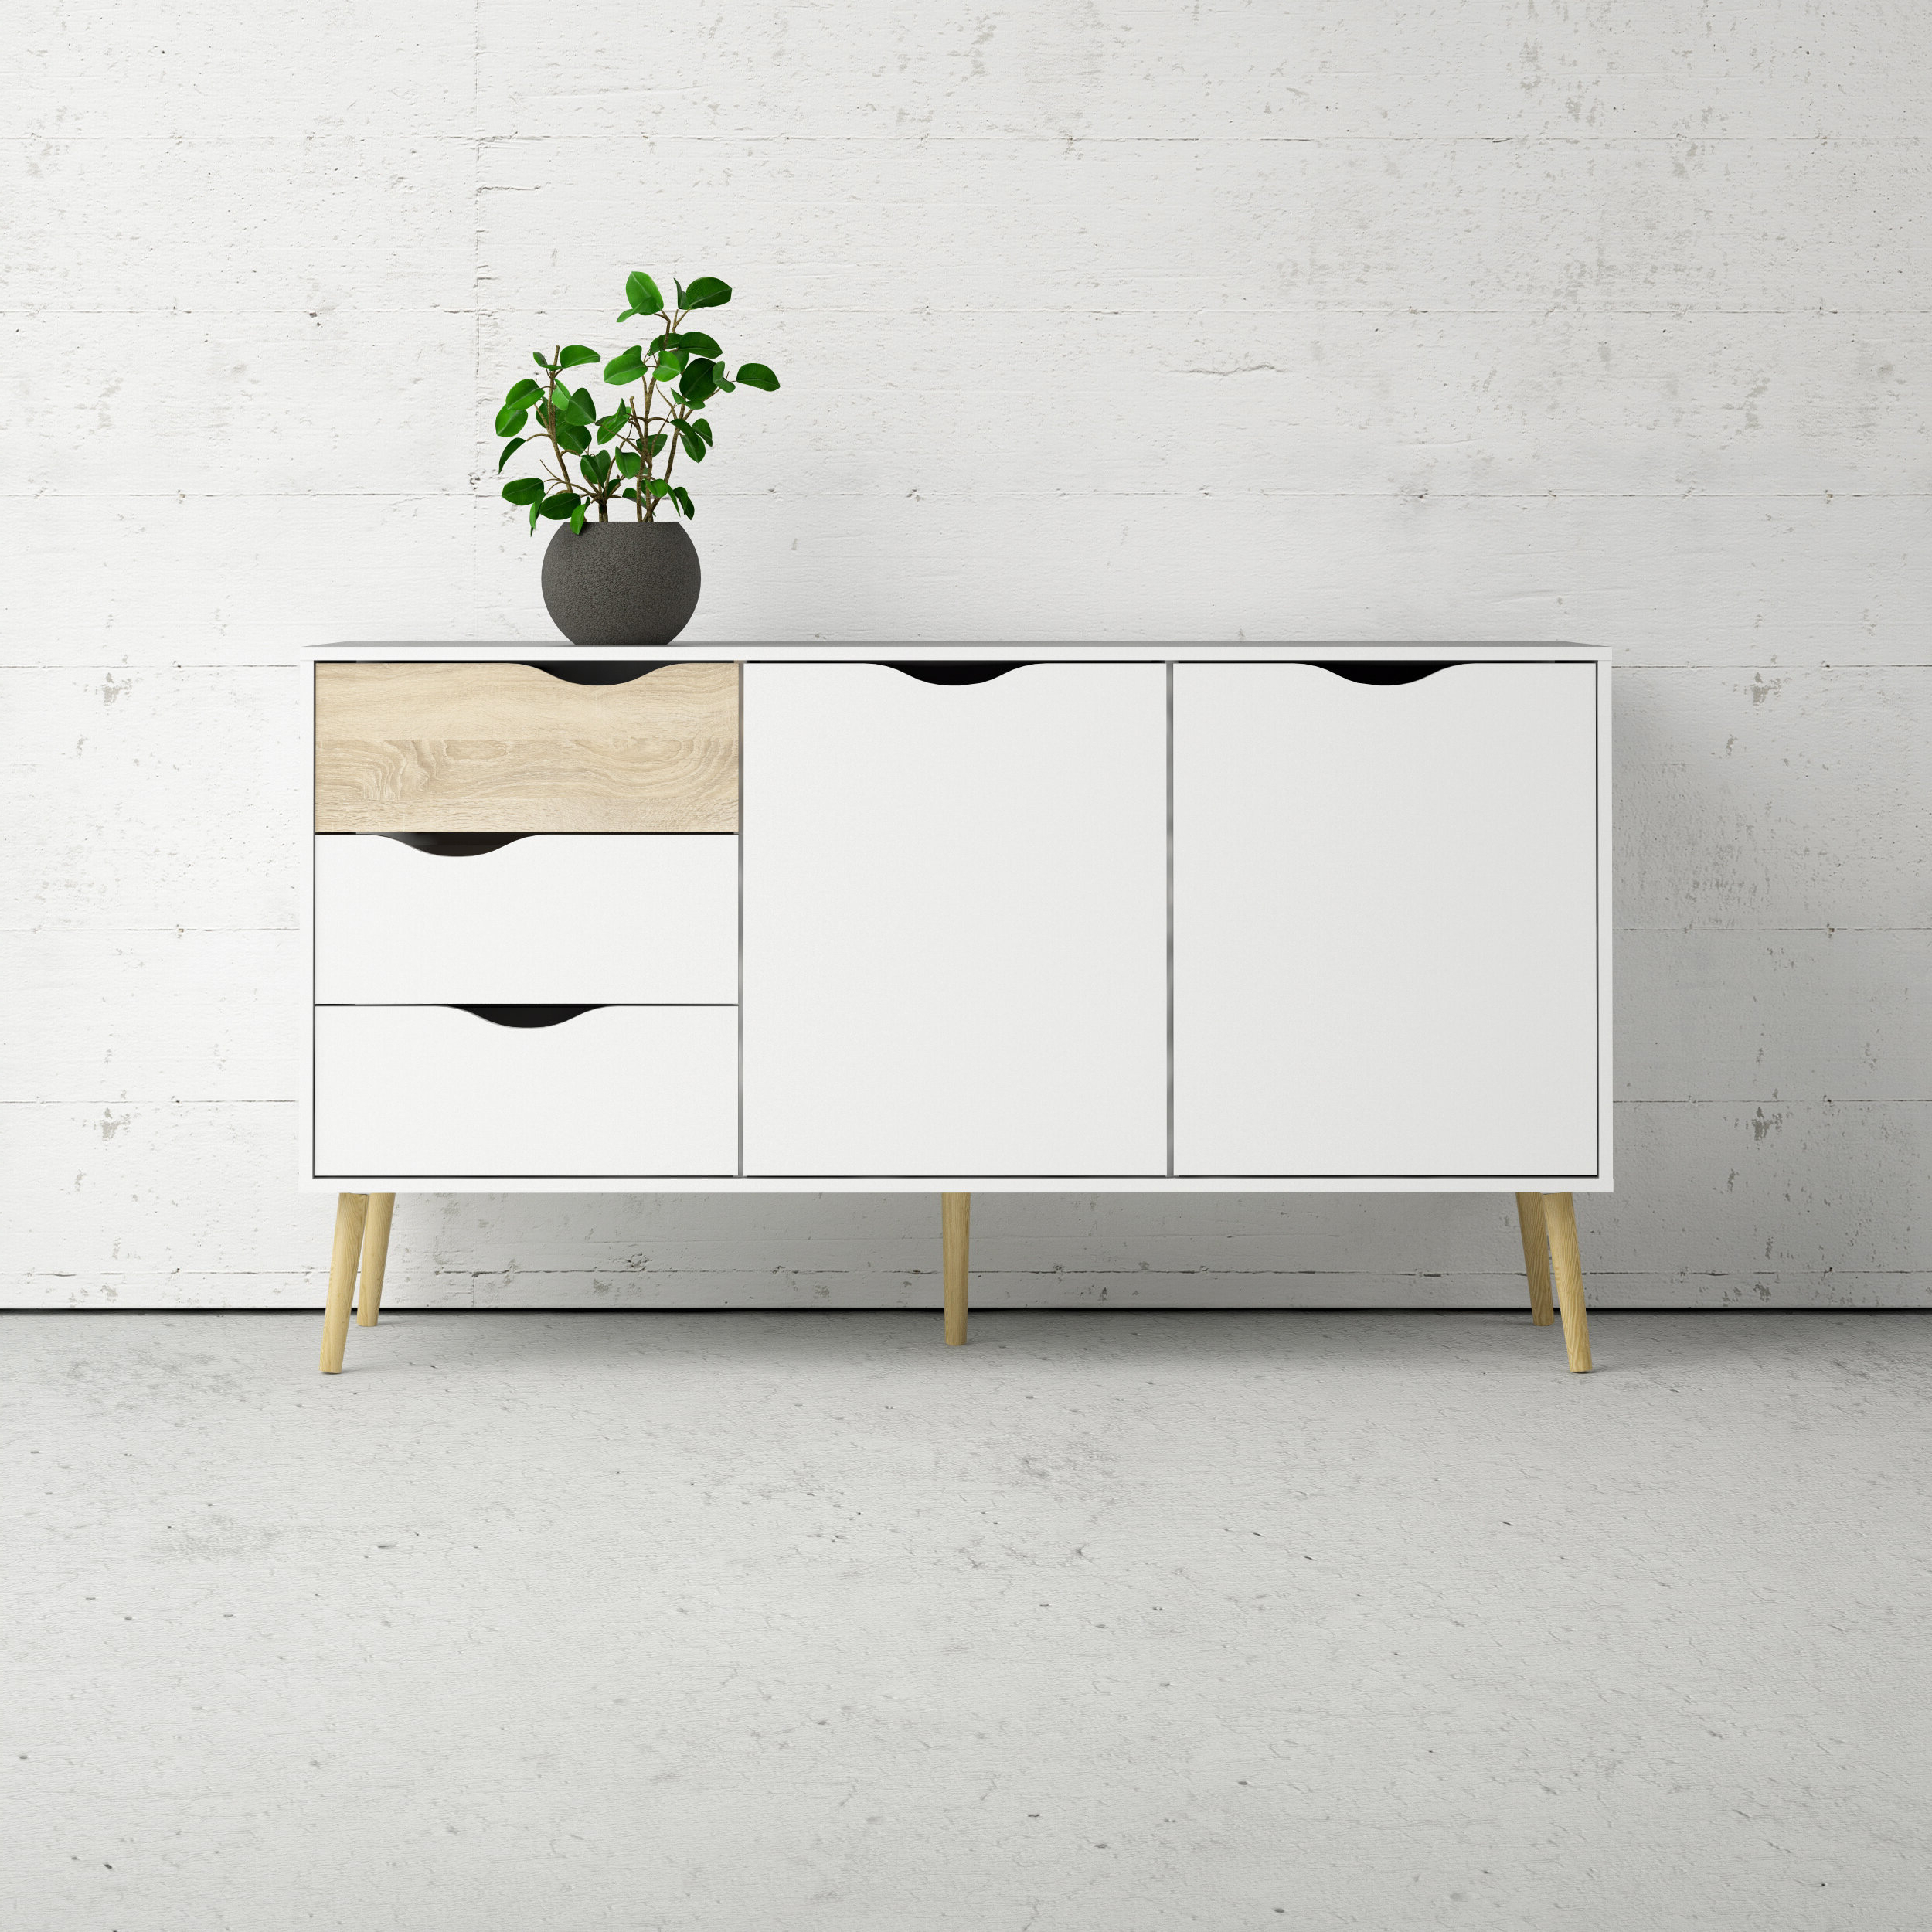 Wayfair Intended For Most Up To Date Dowler 2 Drawer Sideboards (Gallery 1 of 20)